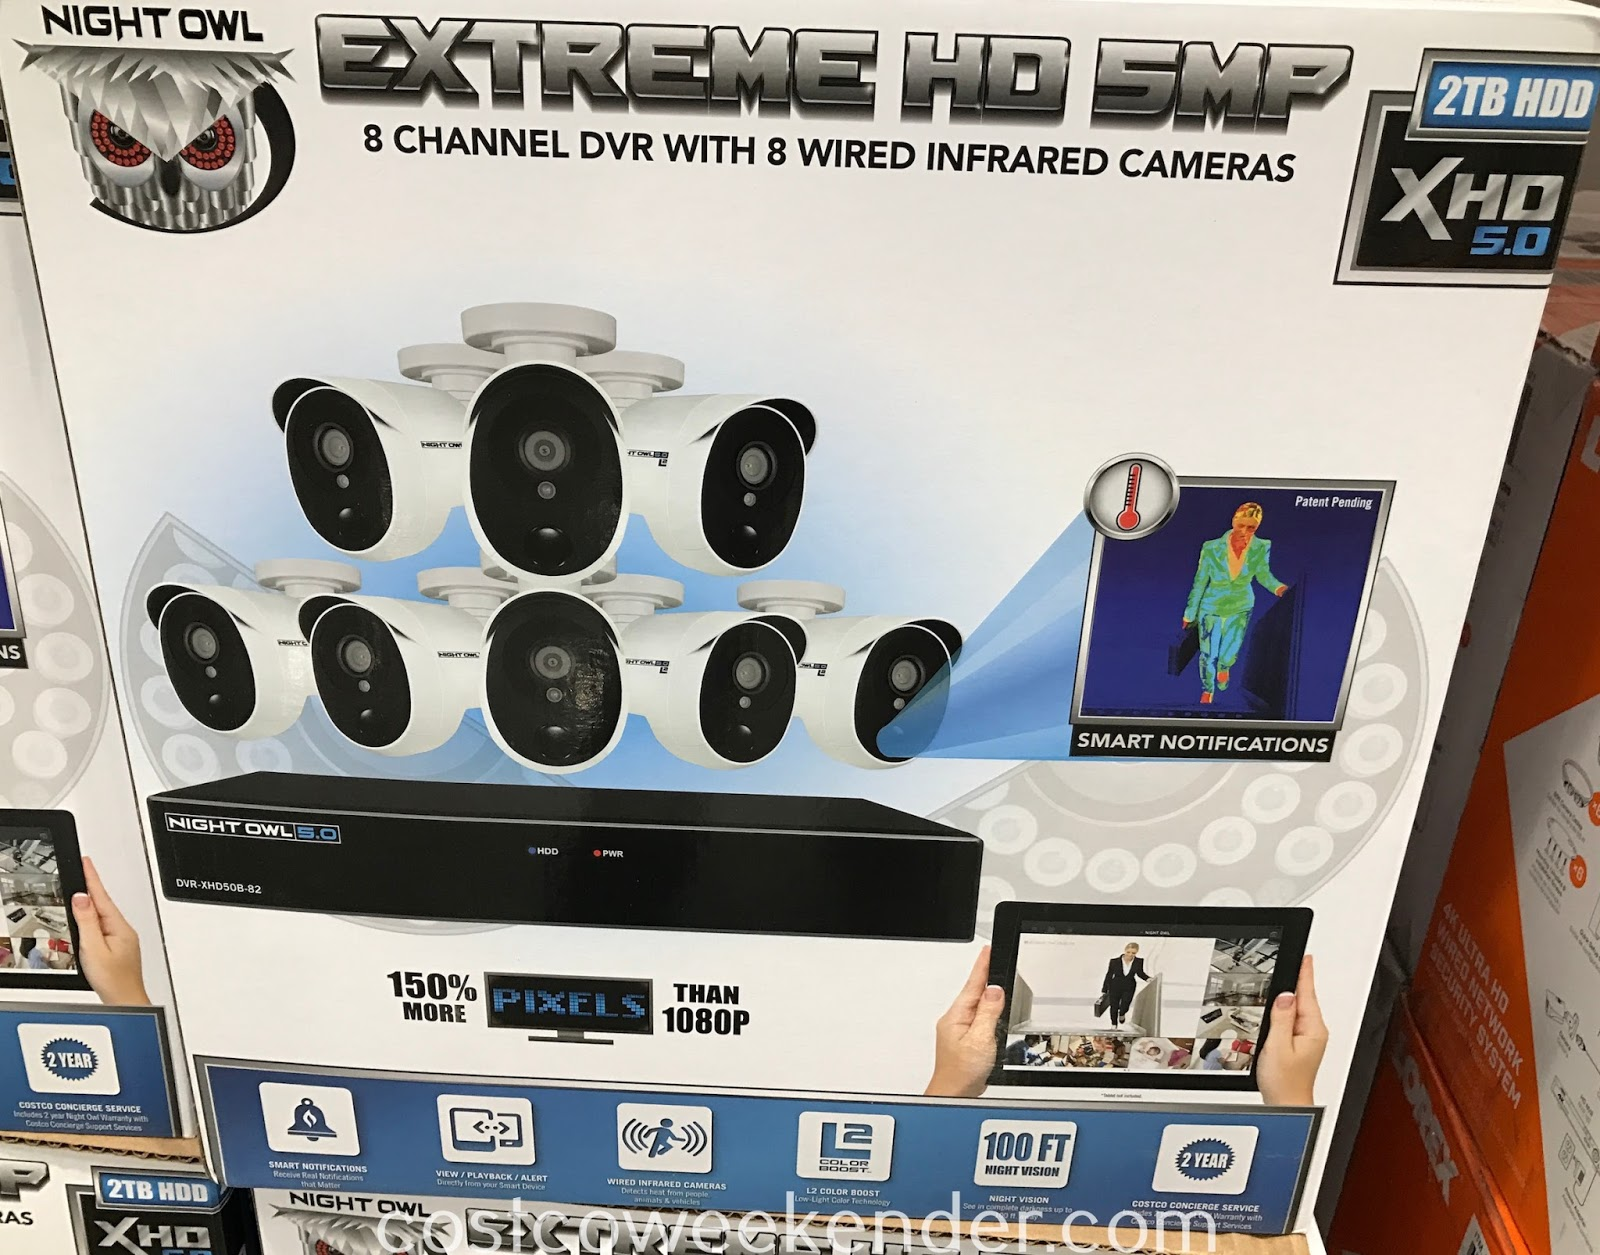 Keep your eye on your home with the Night Owl Extreme HD 5MP 8 Channel DVR with 8 Wired Infrared Cameras